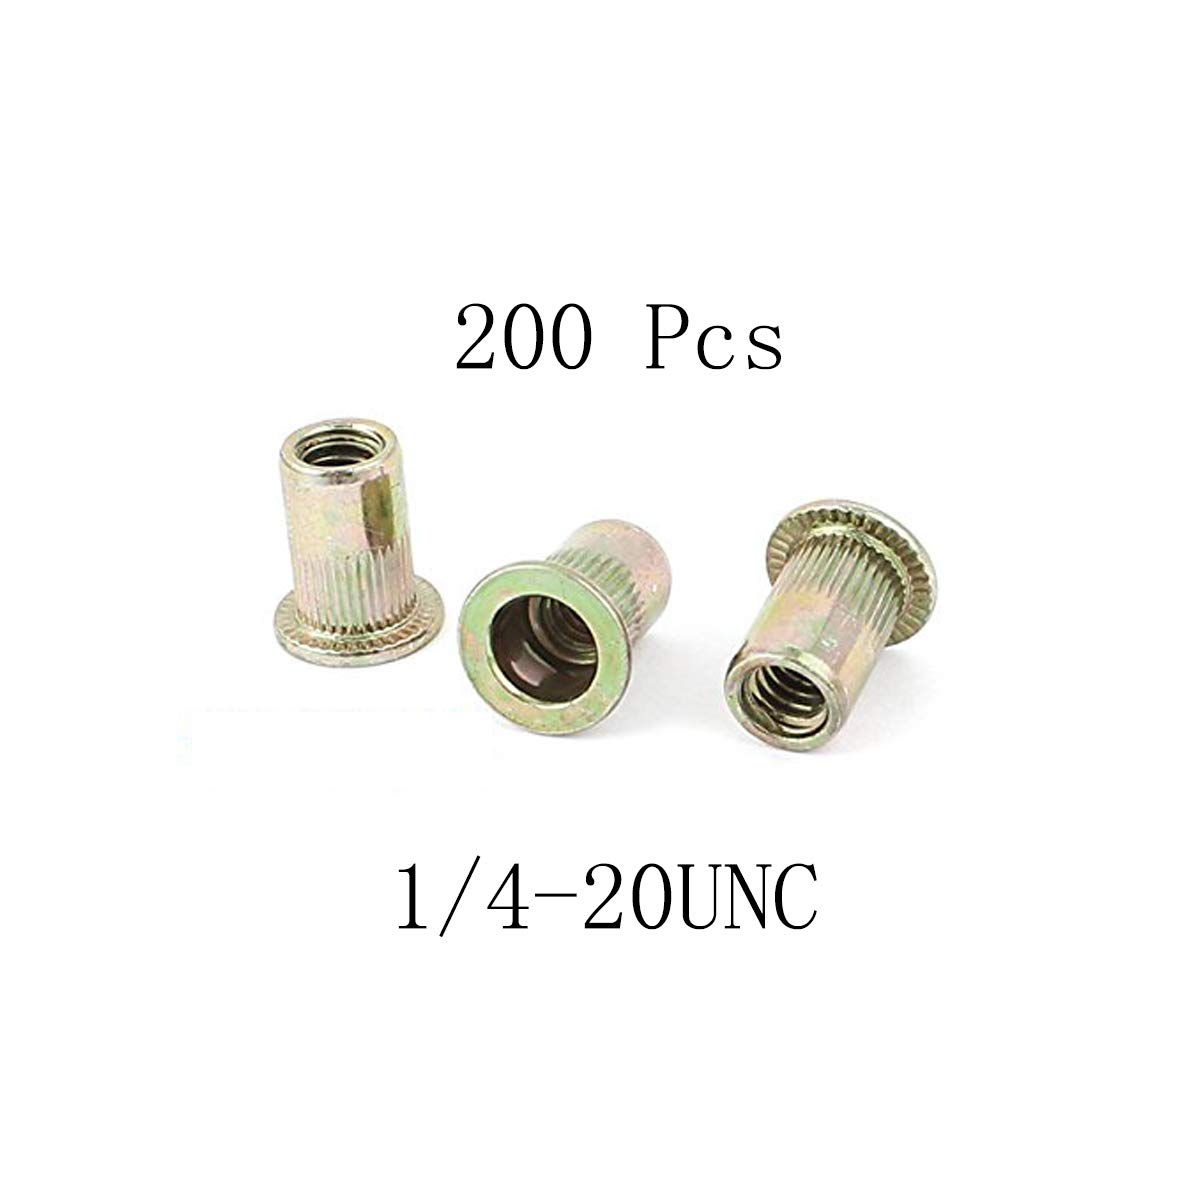 Saim Rivet Nuts Flat Head Rivnut Threaded Insert Nutsert Zinc Plated Carbon Steel Knurled Body Rivet Nut 1//4-20UNC 120Pcs